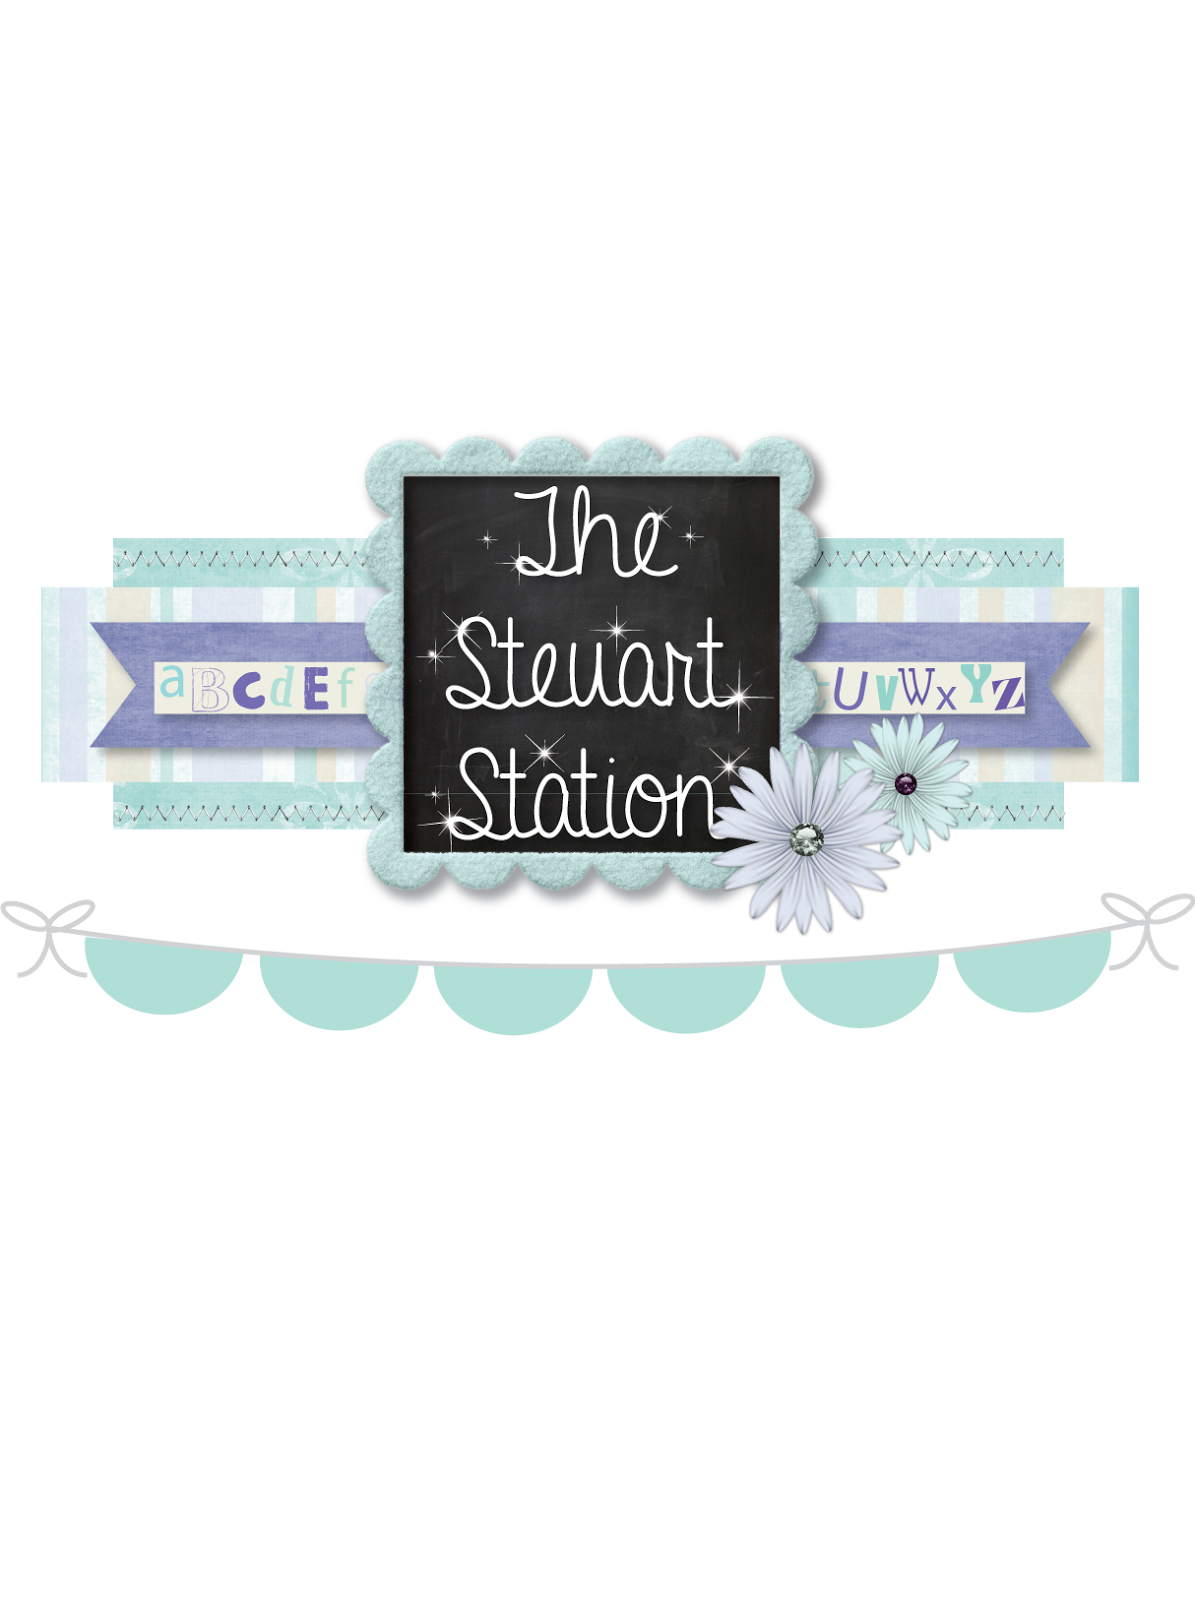 The Steuart Station